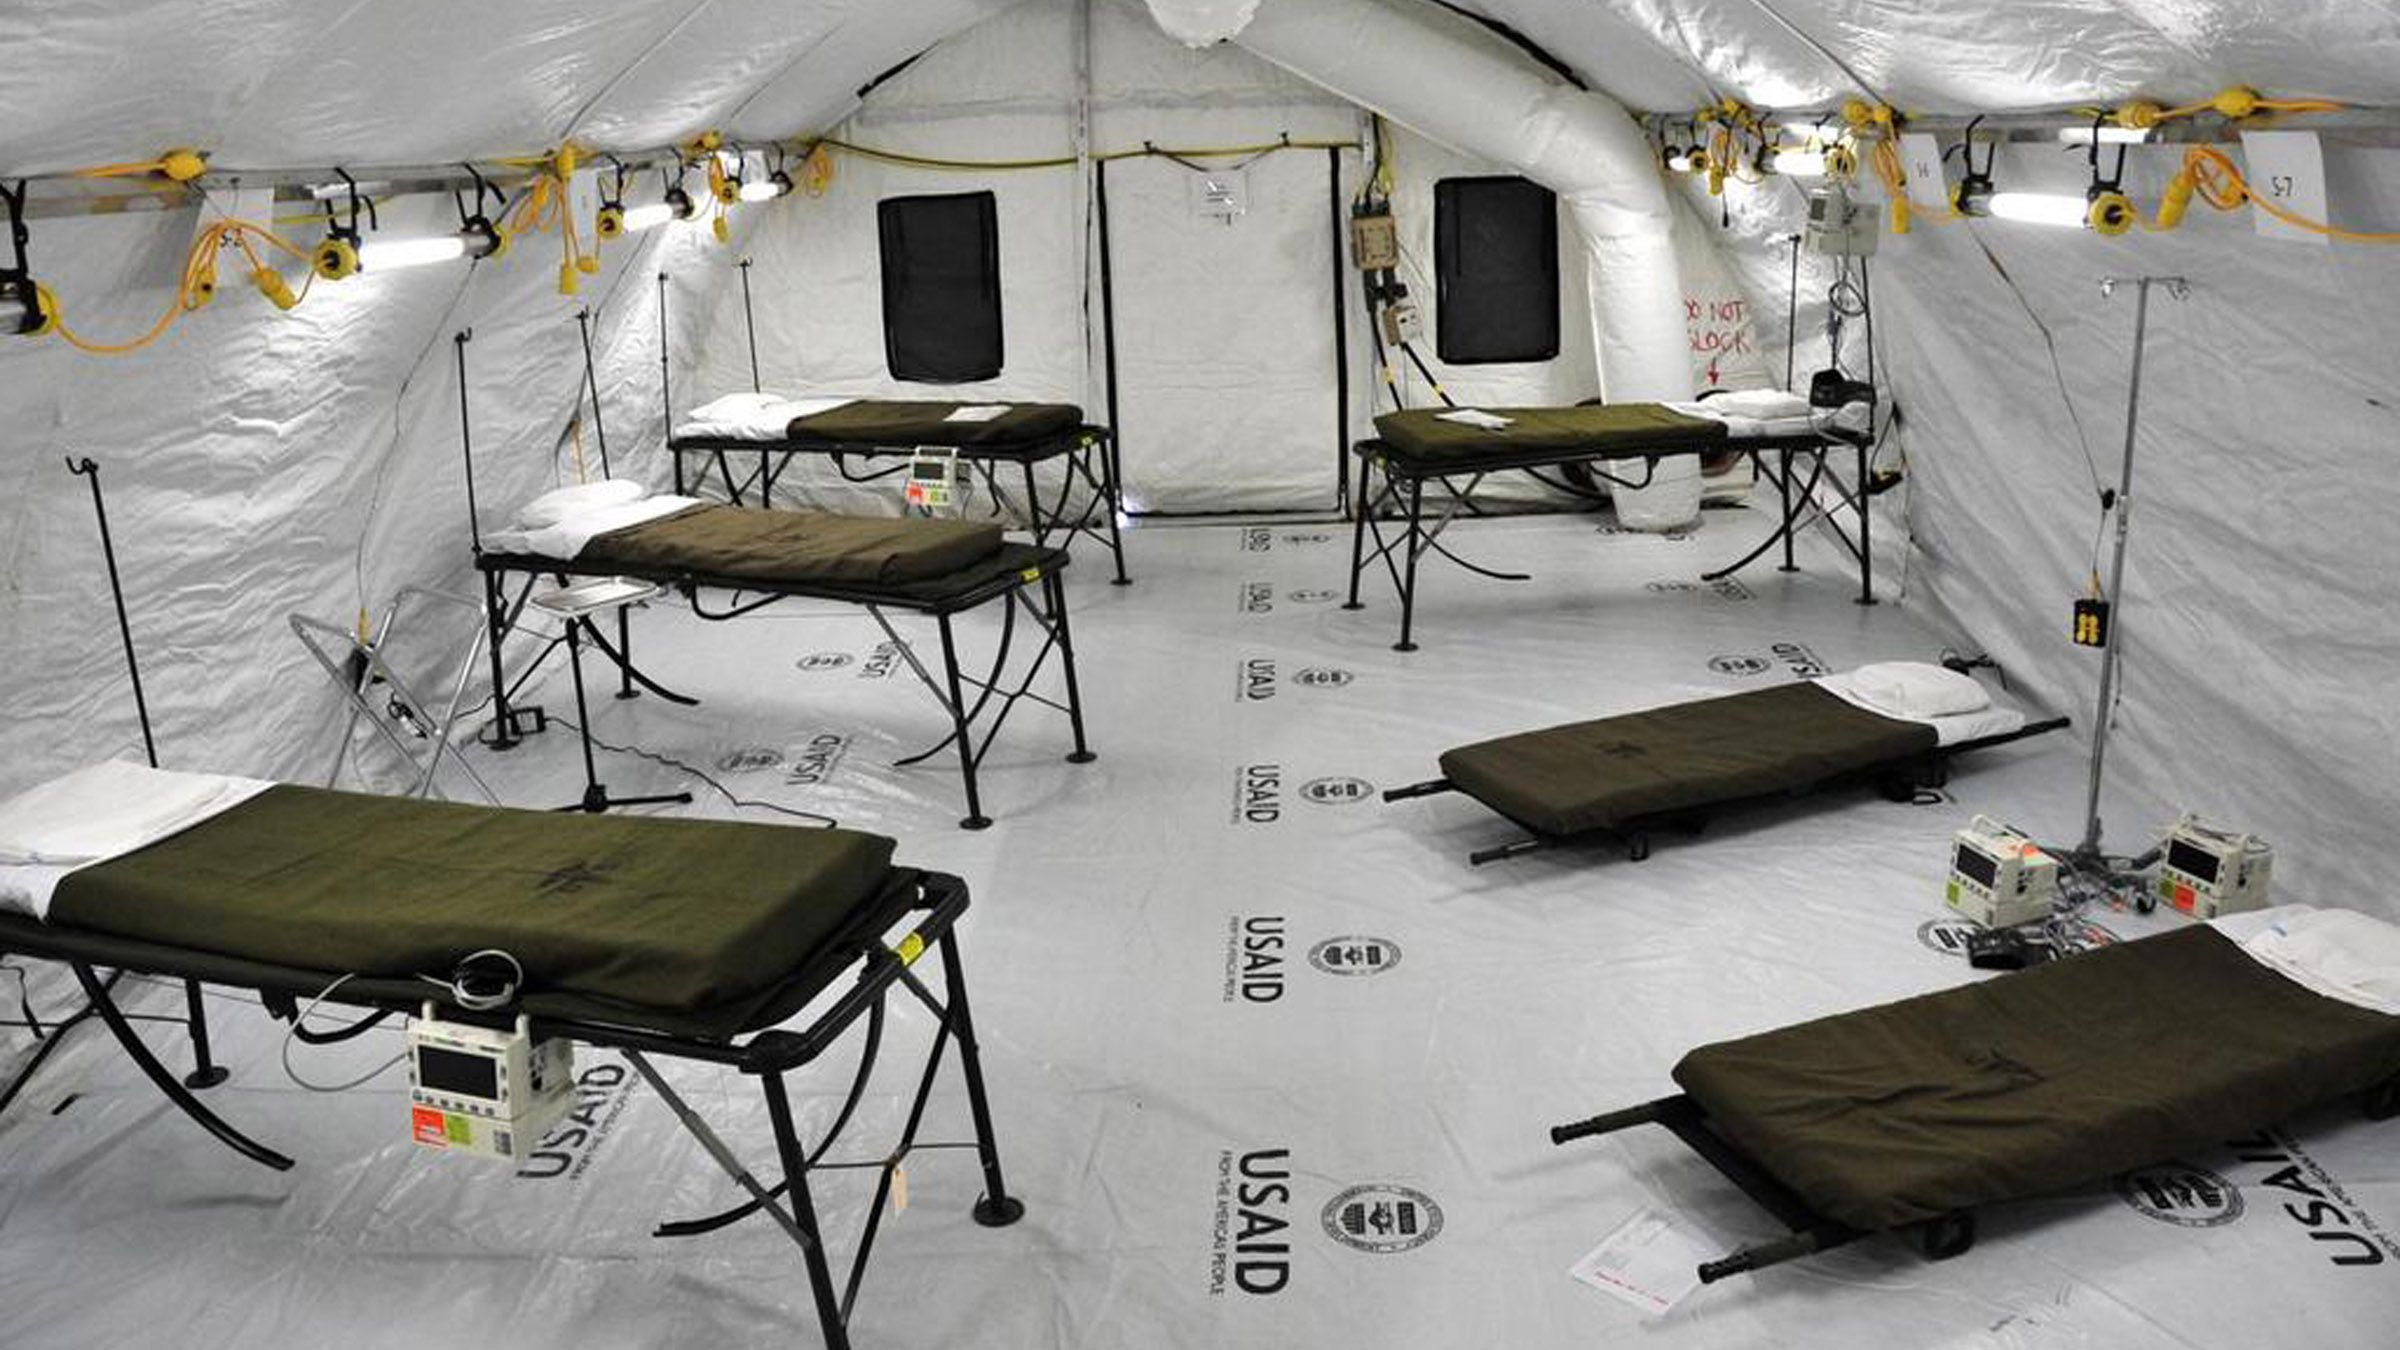 The ward of the Monrovia Medical Unit, which is an Ebola treatment facility specifically built for medical workers who become infected while caring for patients, is seen in a U.S. Army handout picture taken November 4, 2014. The ward is scheduled to open November 8 and will house patients who are Ebola symptomatic but are awaiting their lab work to return. Picture taken November 4, 2014.